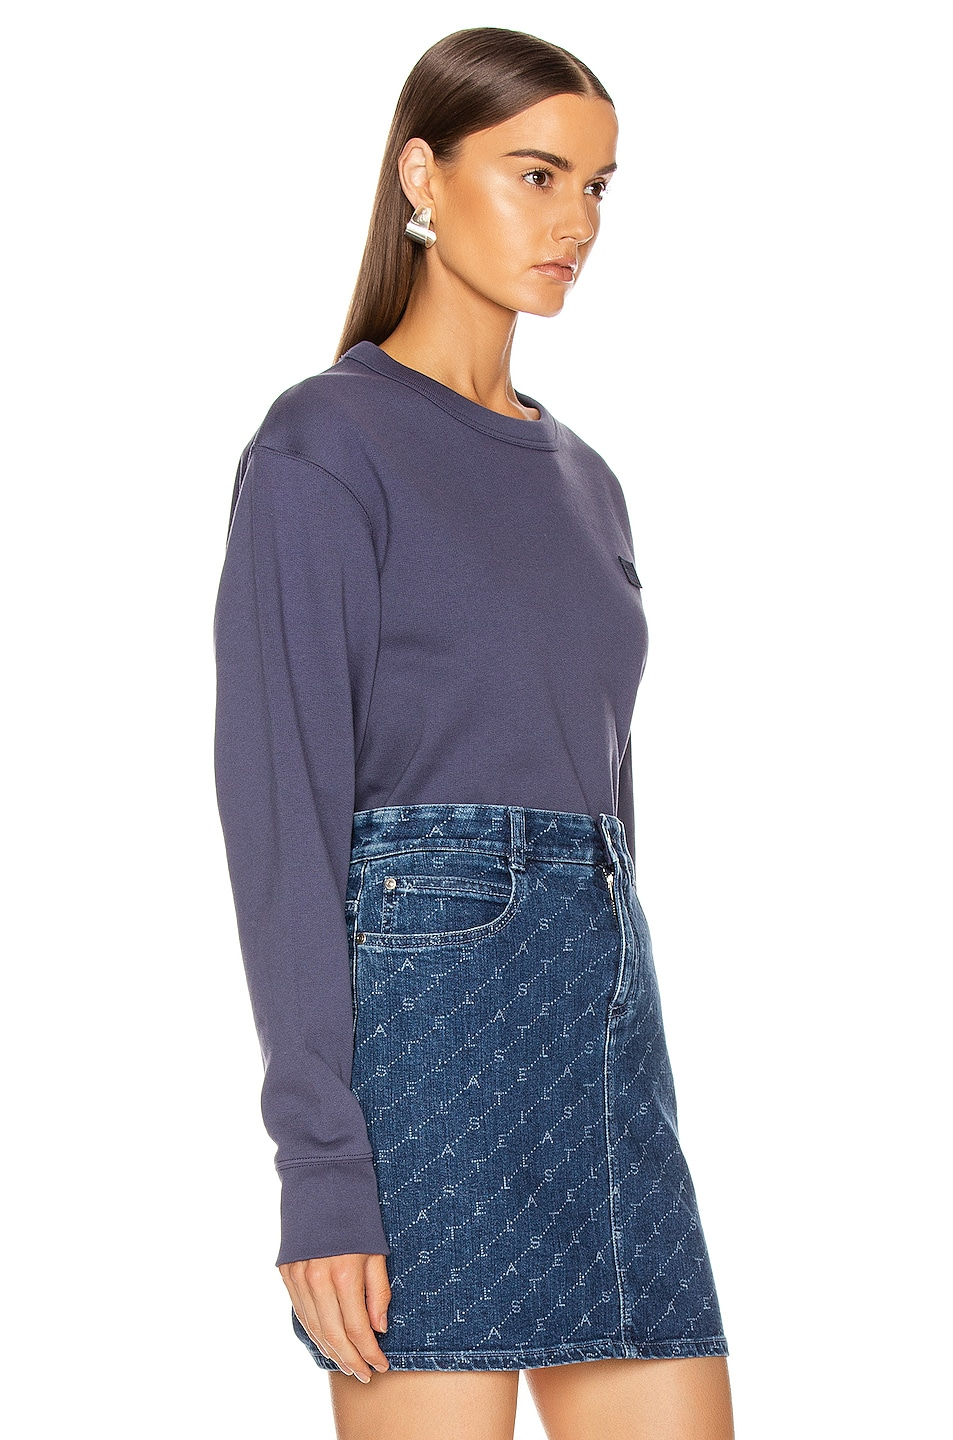 Image 2 of Acne Studios Fairview Face Sweatshirt in Denim Blue